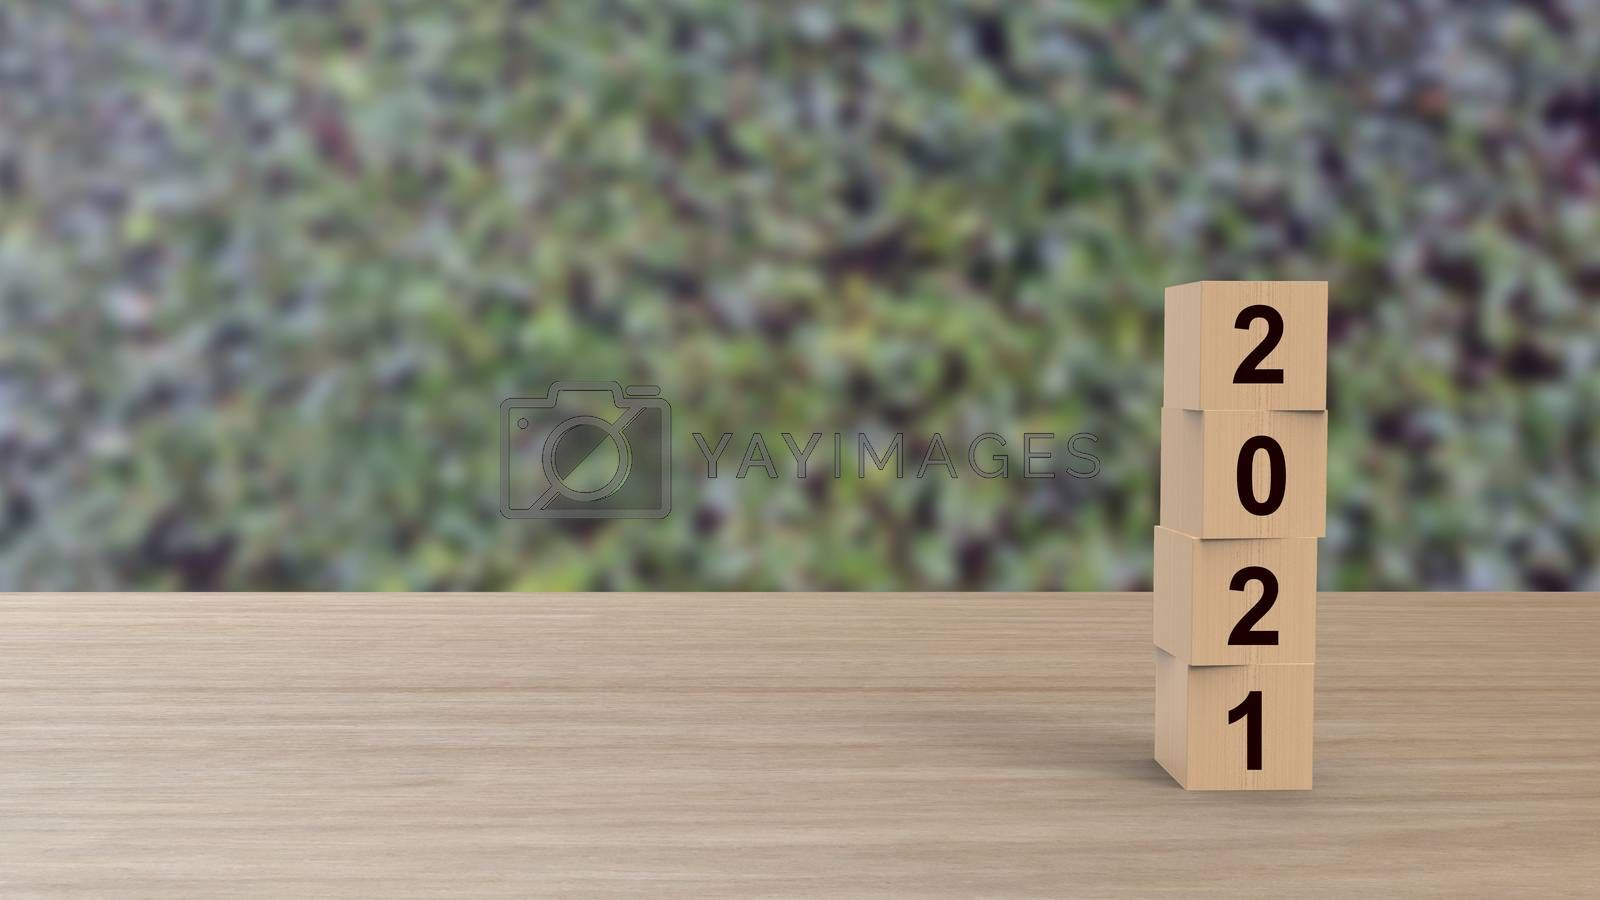 2021 numbers word Wooden cubes on table vertical over background leaves green HD, mock up, template, banner with copy space for text, Happy New Year design concept. Celebration greeting, 3d render